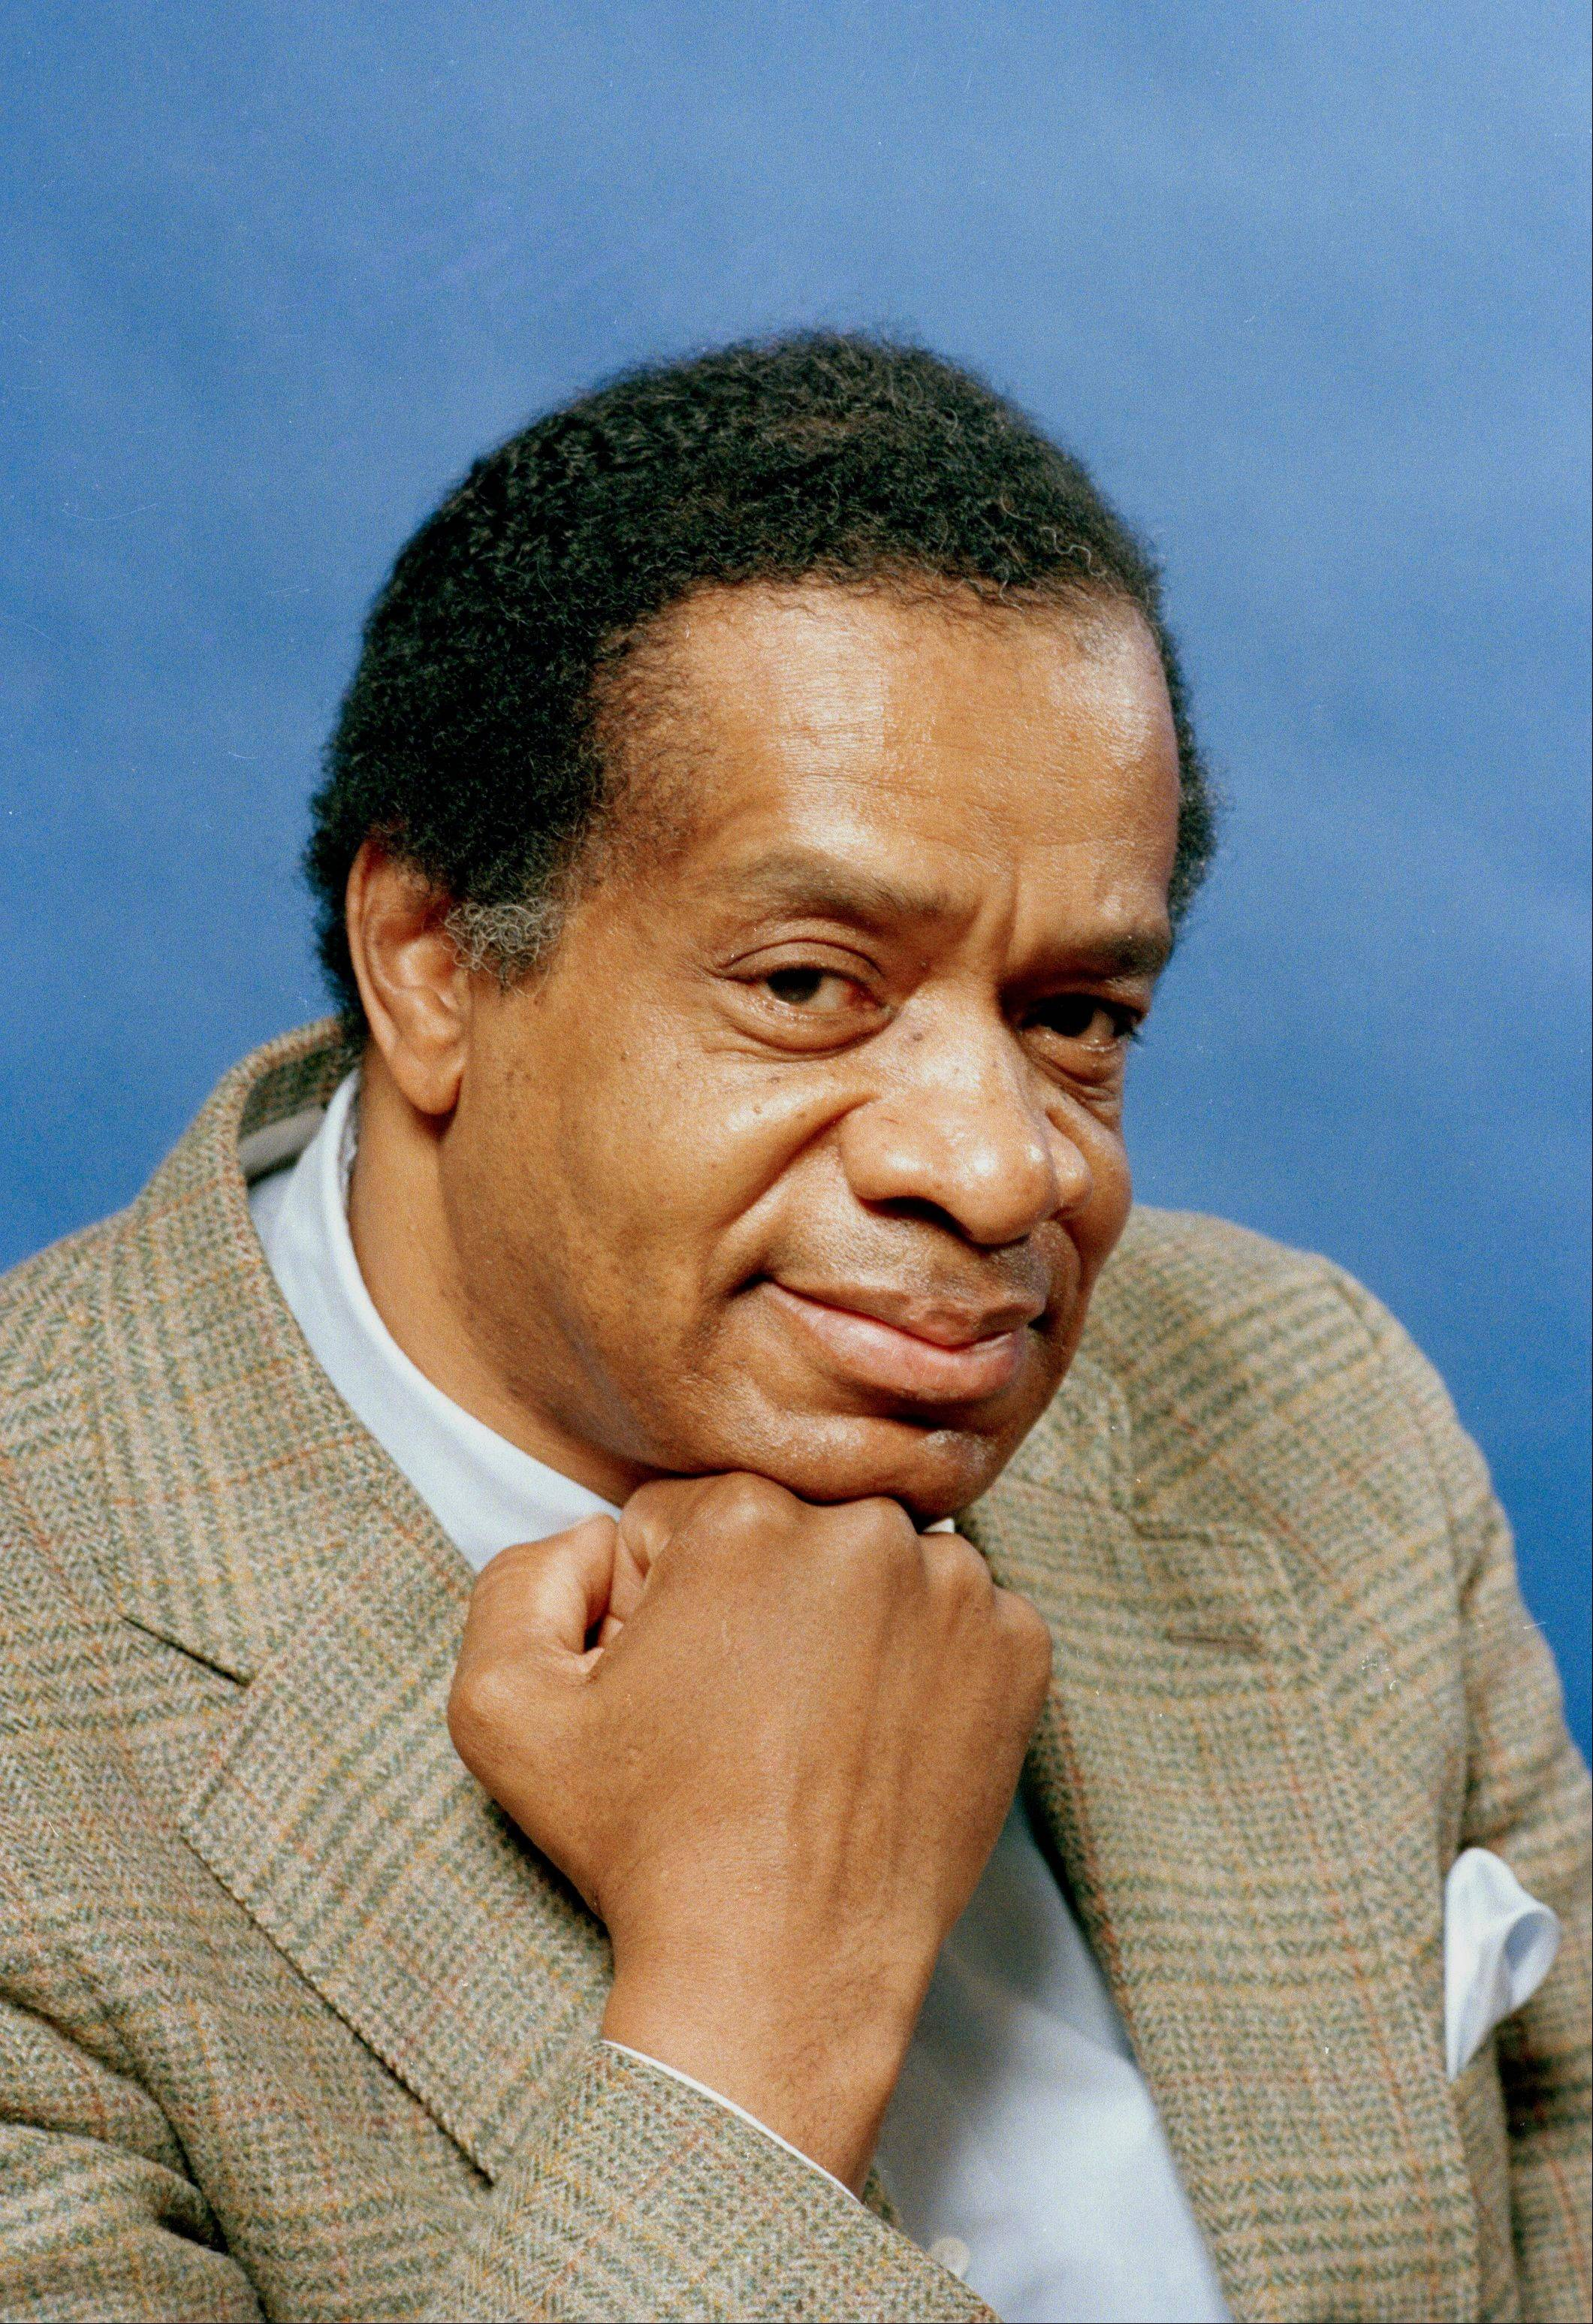 Trumpeter, composer and educator Donald Byrd has died at the age of 80.